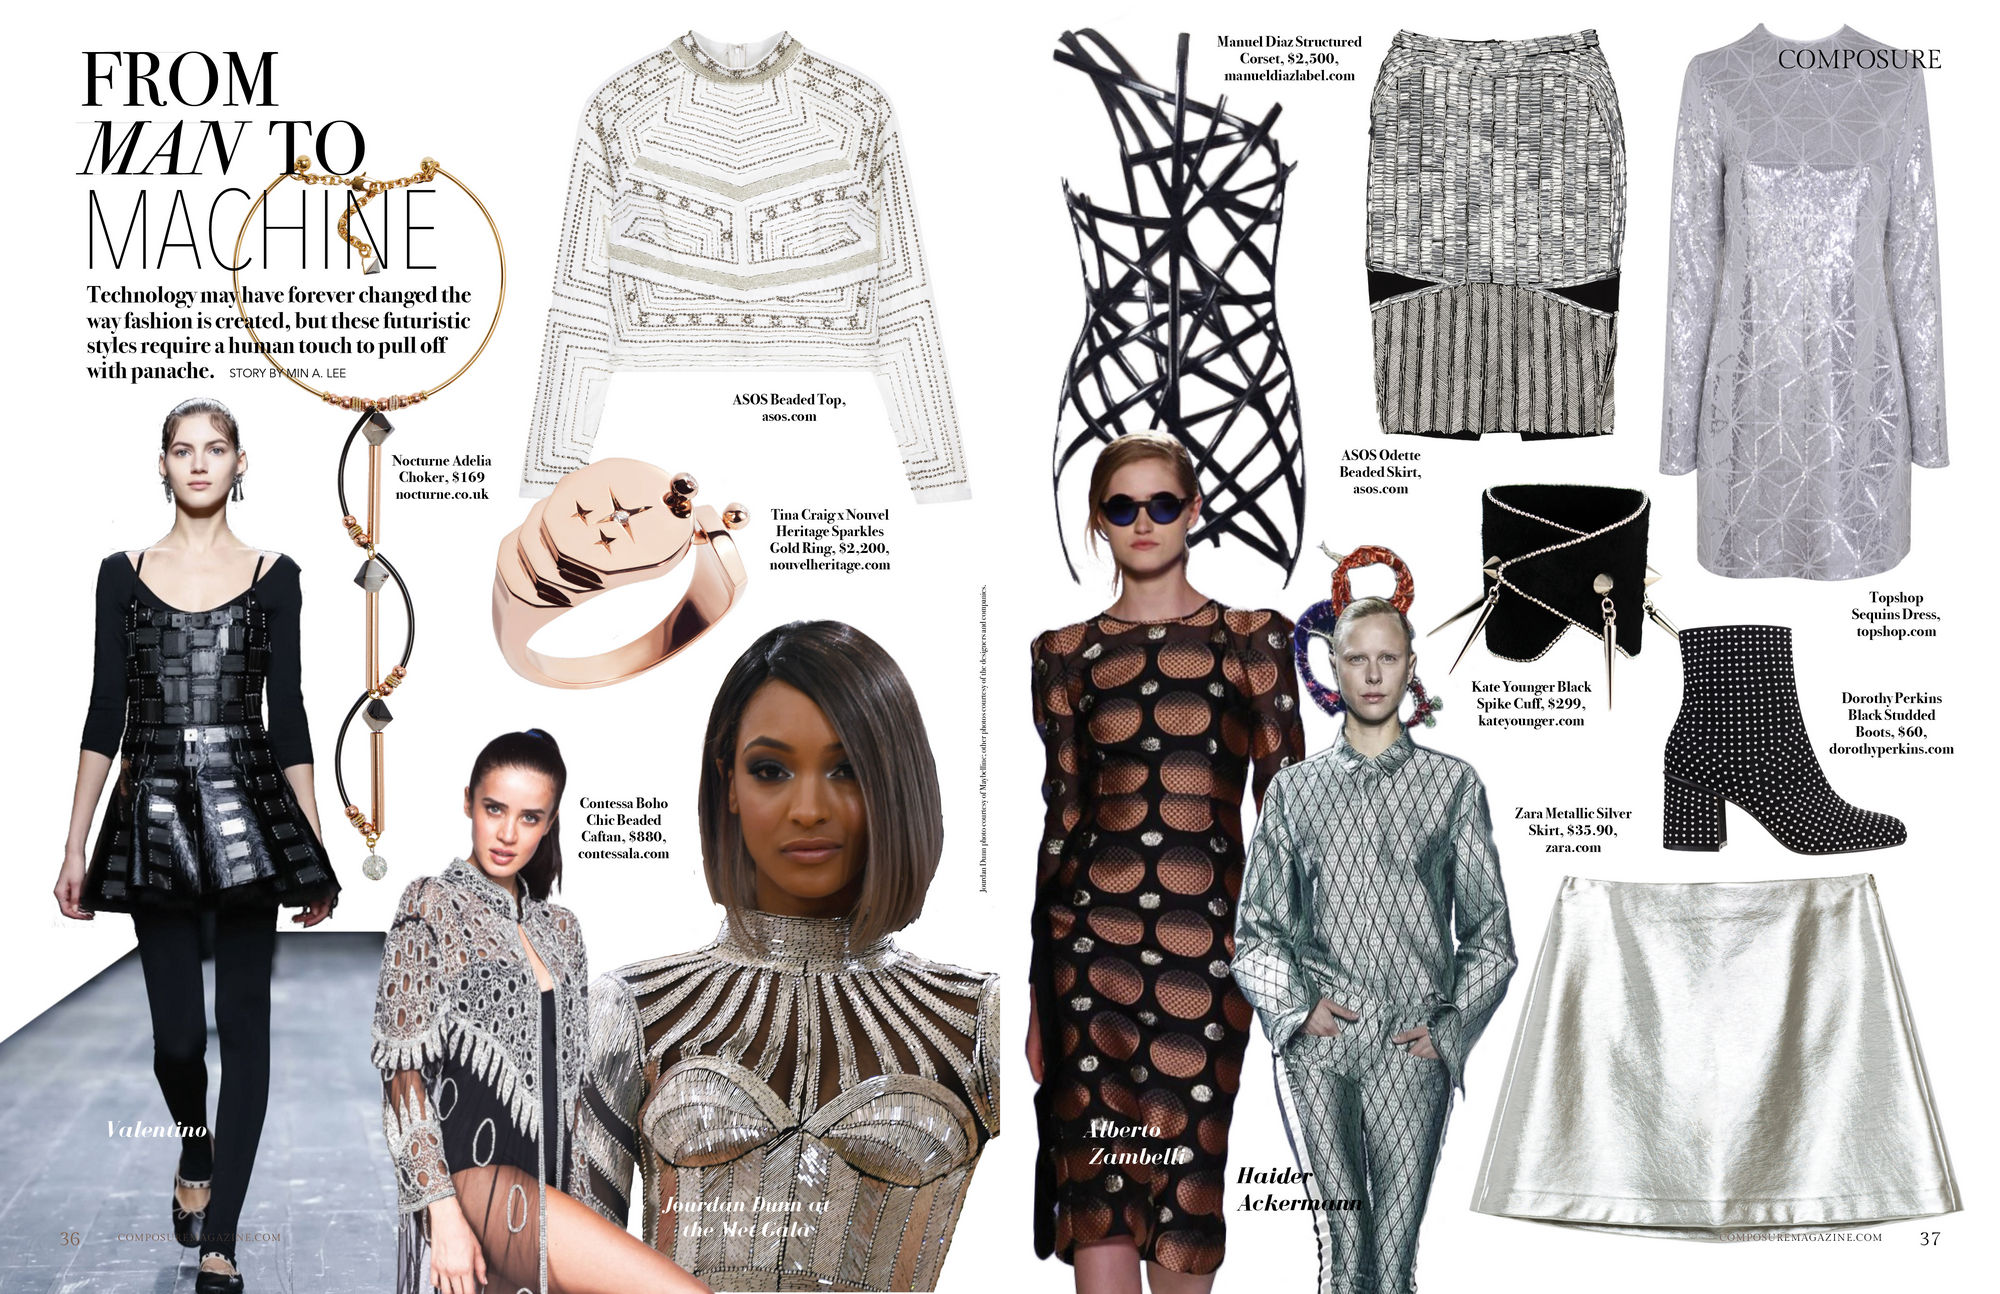 Technology may have forever changed the way fashion is created, but these futuristic styles require a human touch to pull off with panache.